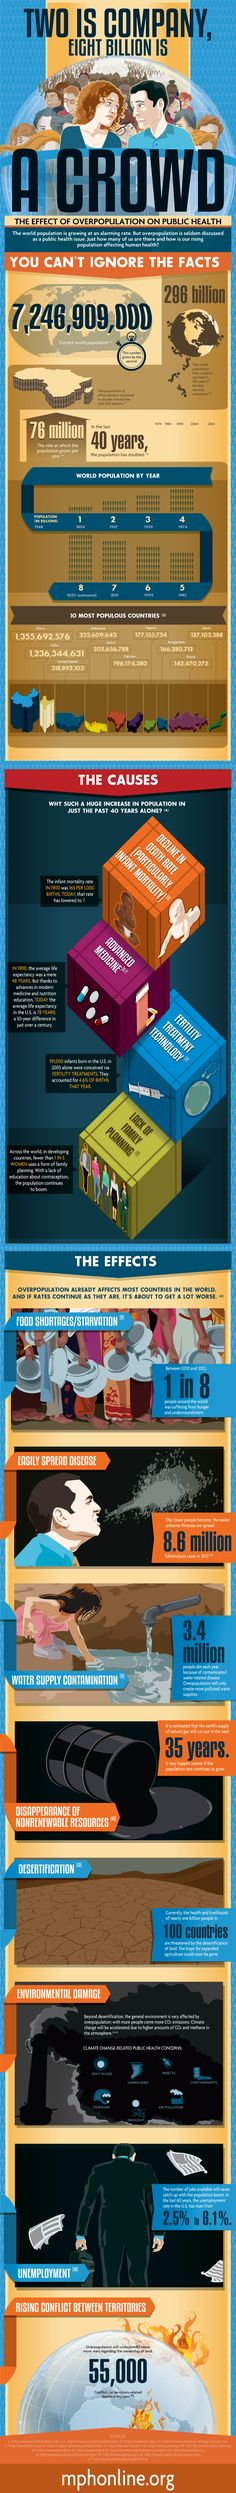 The Effect of Overpopulation on Public Health